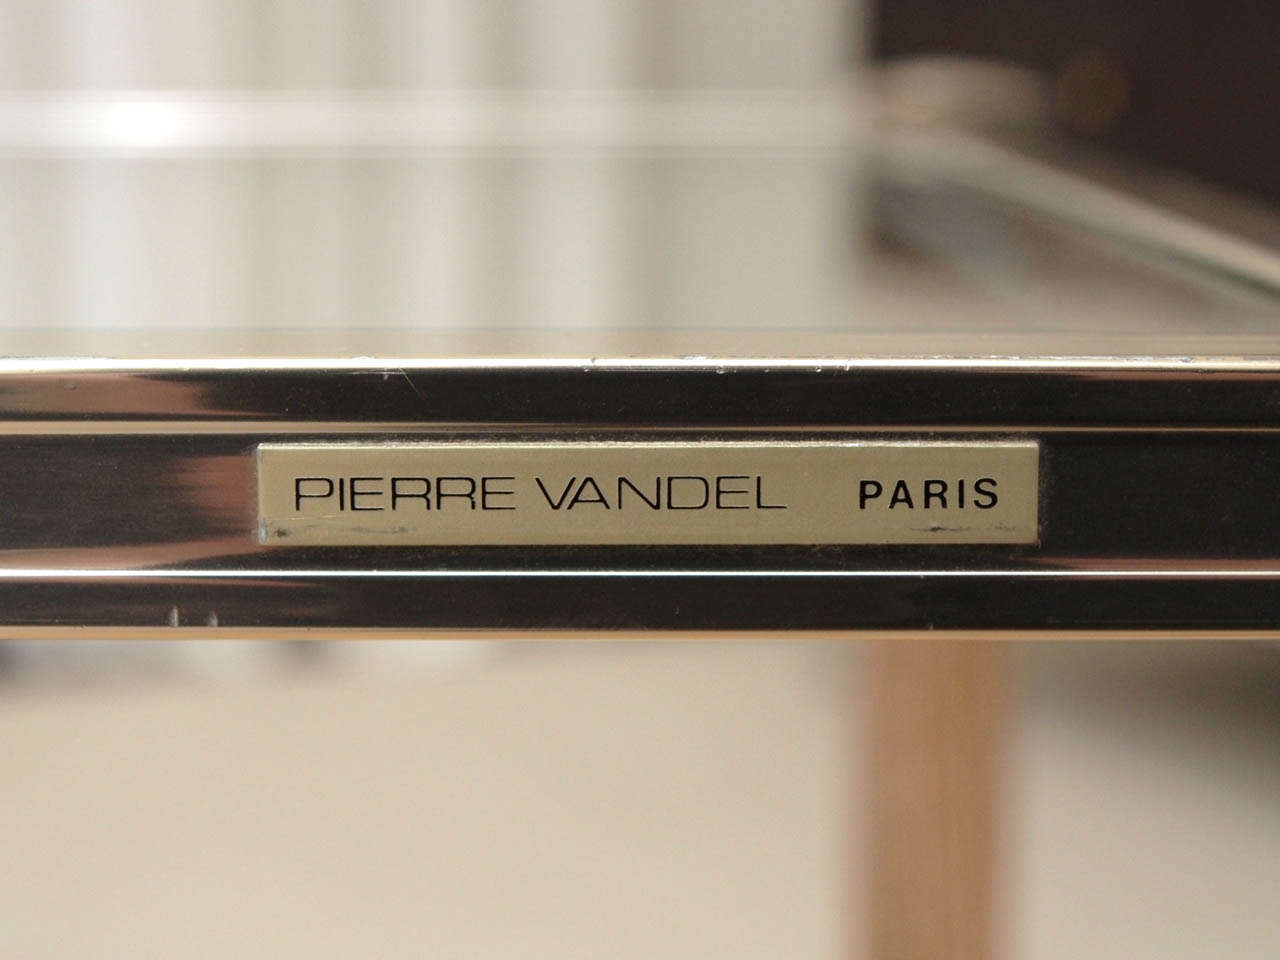 pair of oak ceruse side tables signed pierre vandel paris for sale at 1stdibs. Black Bedroom Furniture Sets. Home Design Ideas